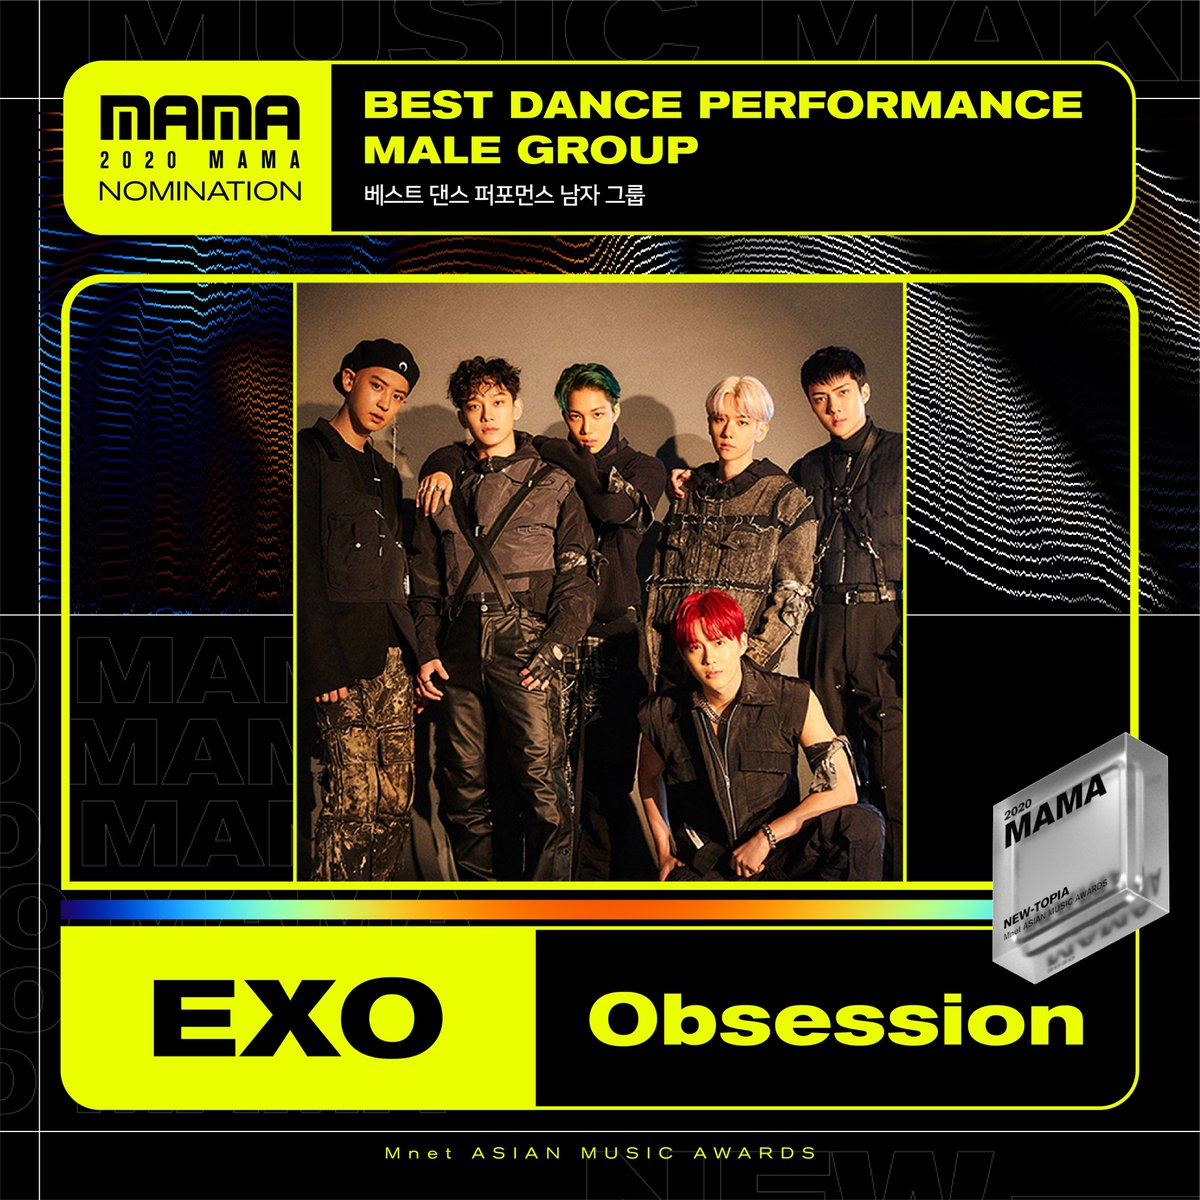 #RT @WWEXOL: RT @MnetMAMA: [#2020MAMA] Best Dance Performance Male Group Nominee l #exo #Obsession   Gate to NEW-TOPIA, 2020 MAMA 2020.12.06 (SUN)   #MnetASIANMUSICAWARDS #MAMA #Mnet https://t.co/tCB6j2UltY